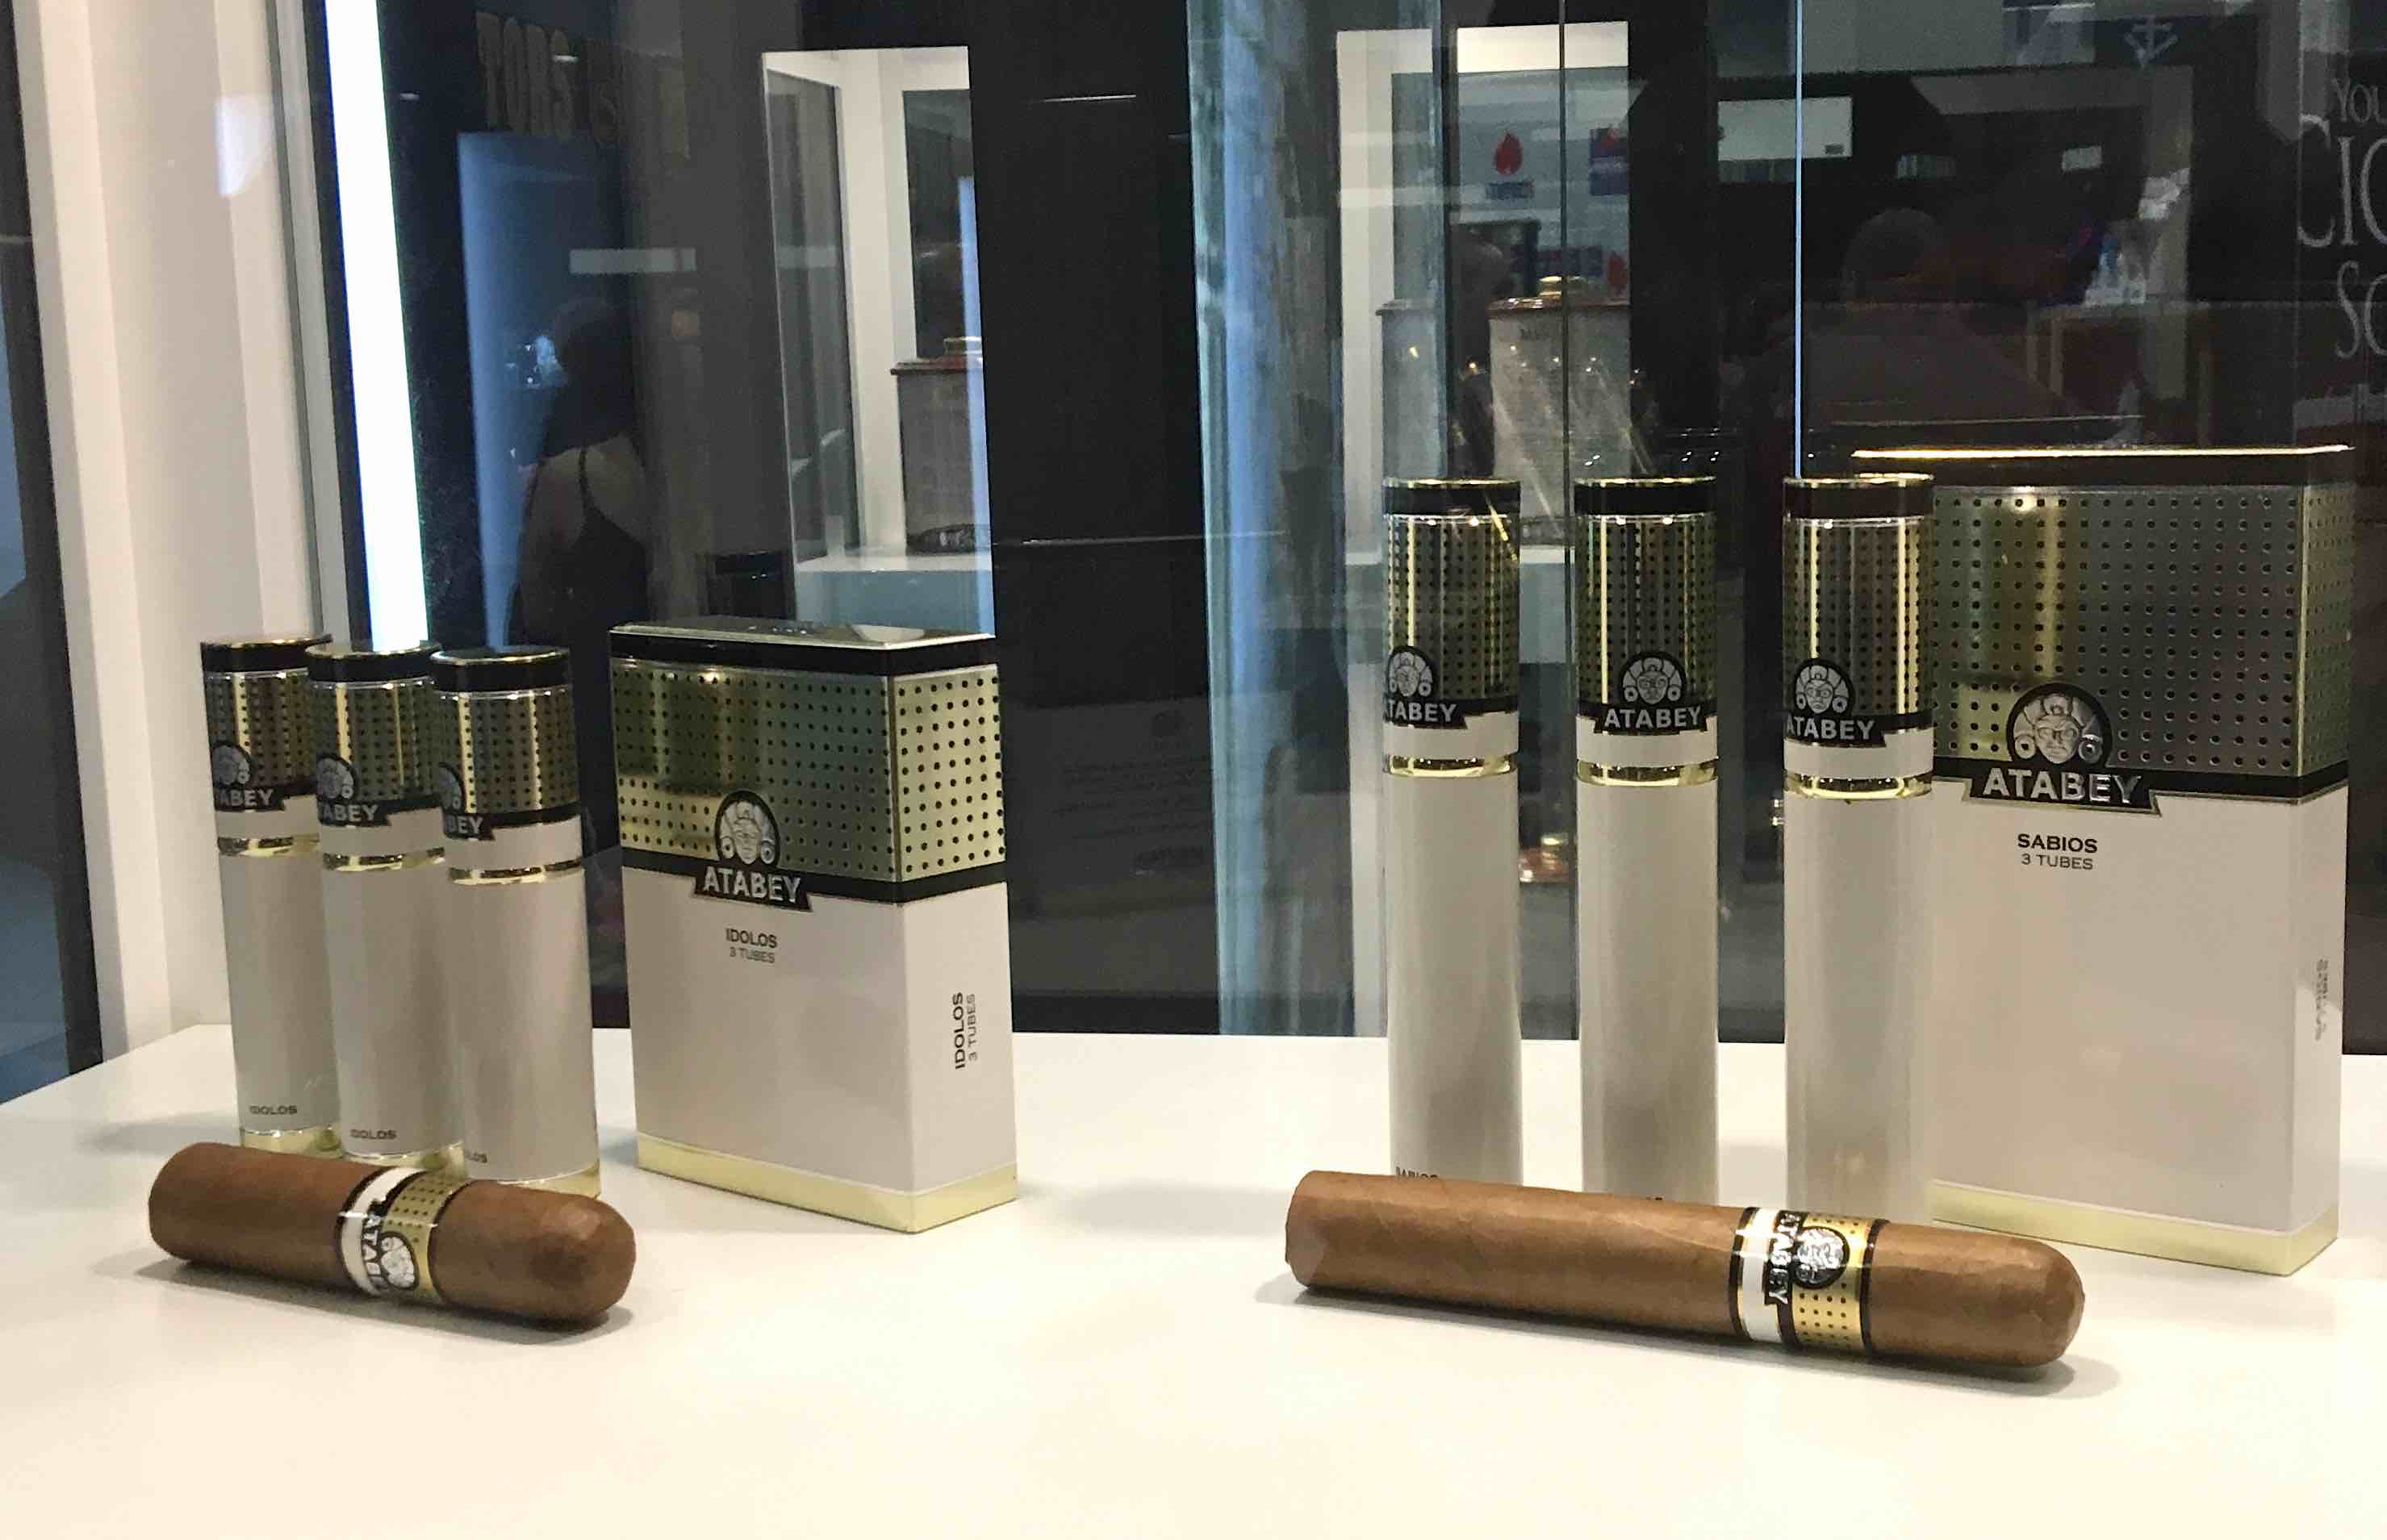 Cigar News: Selected Tobacco Launches Atabey Idolos and Sabios Line Extensions